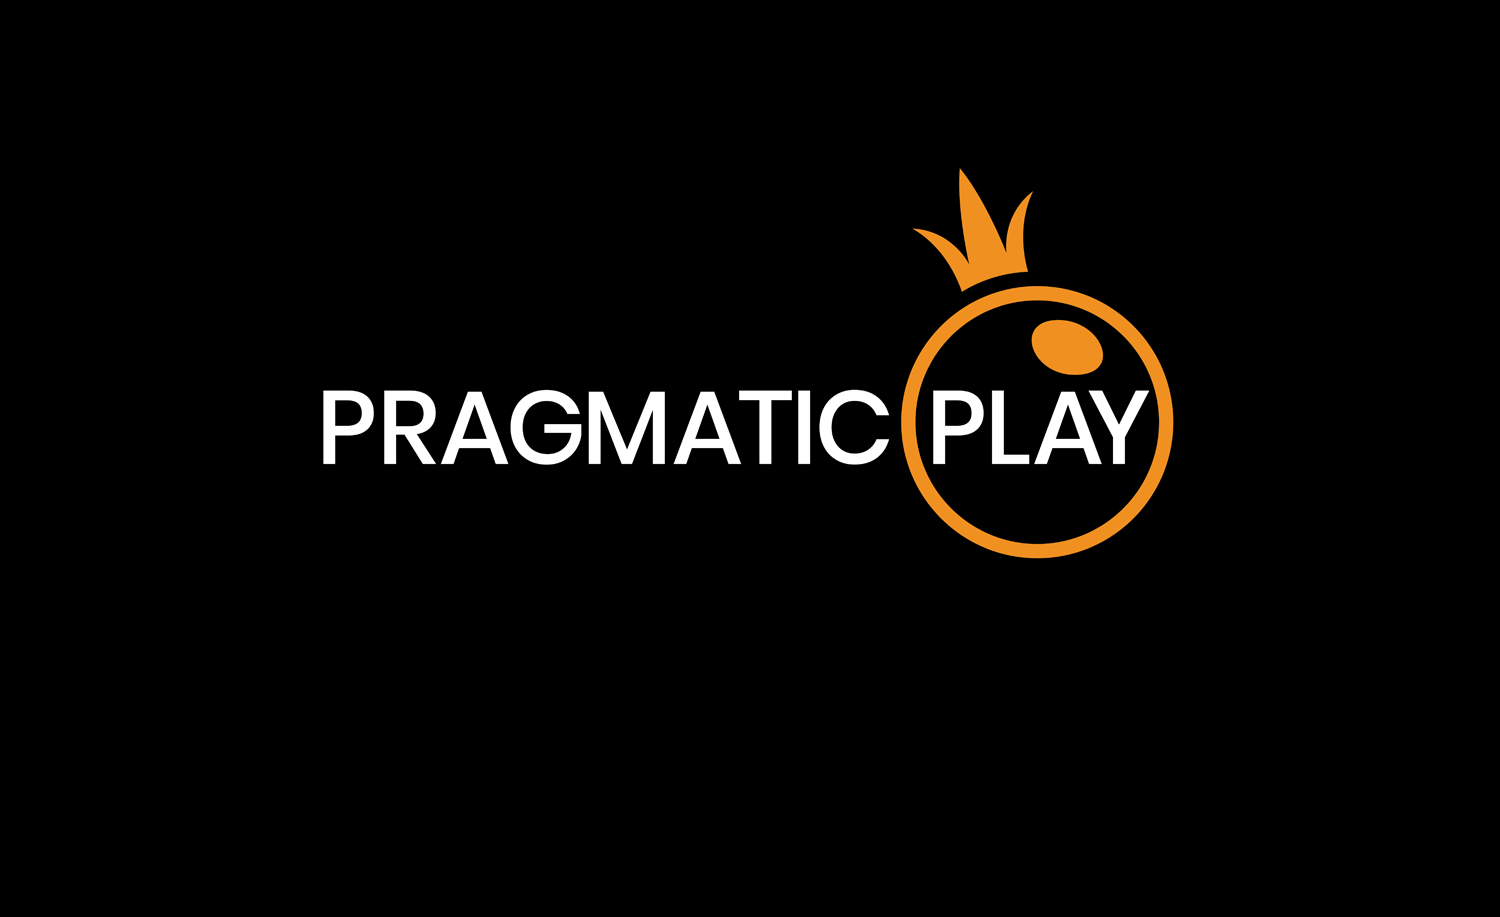 NetBet Extends Pragmatic Play Deal With Live Dealer